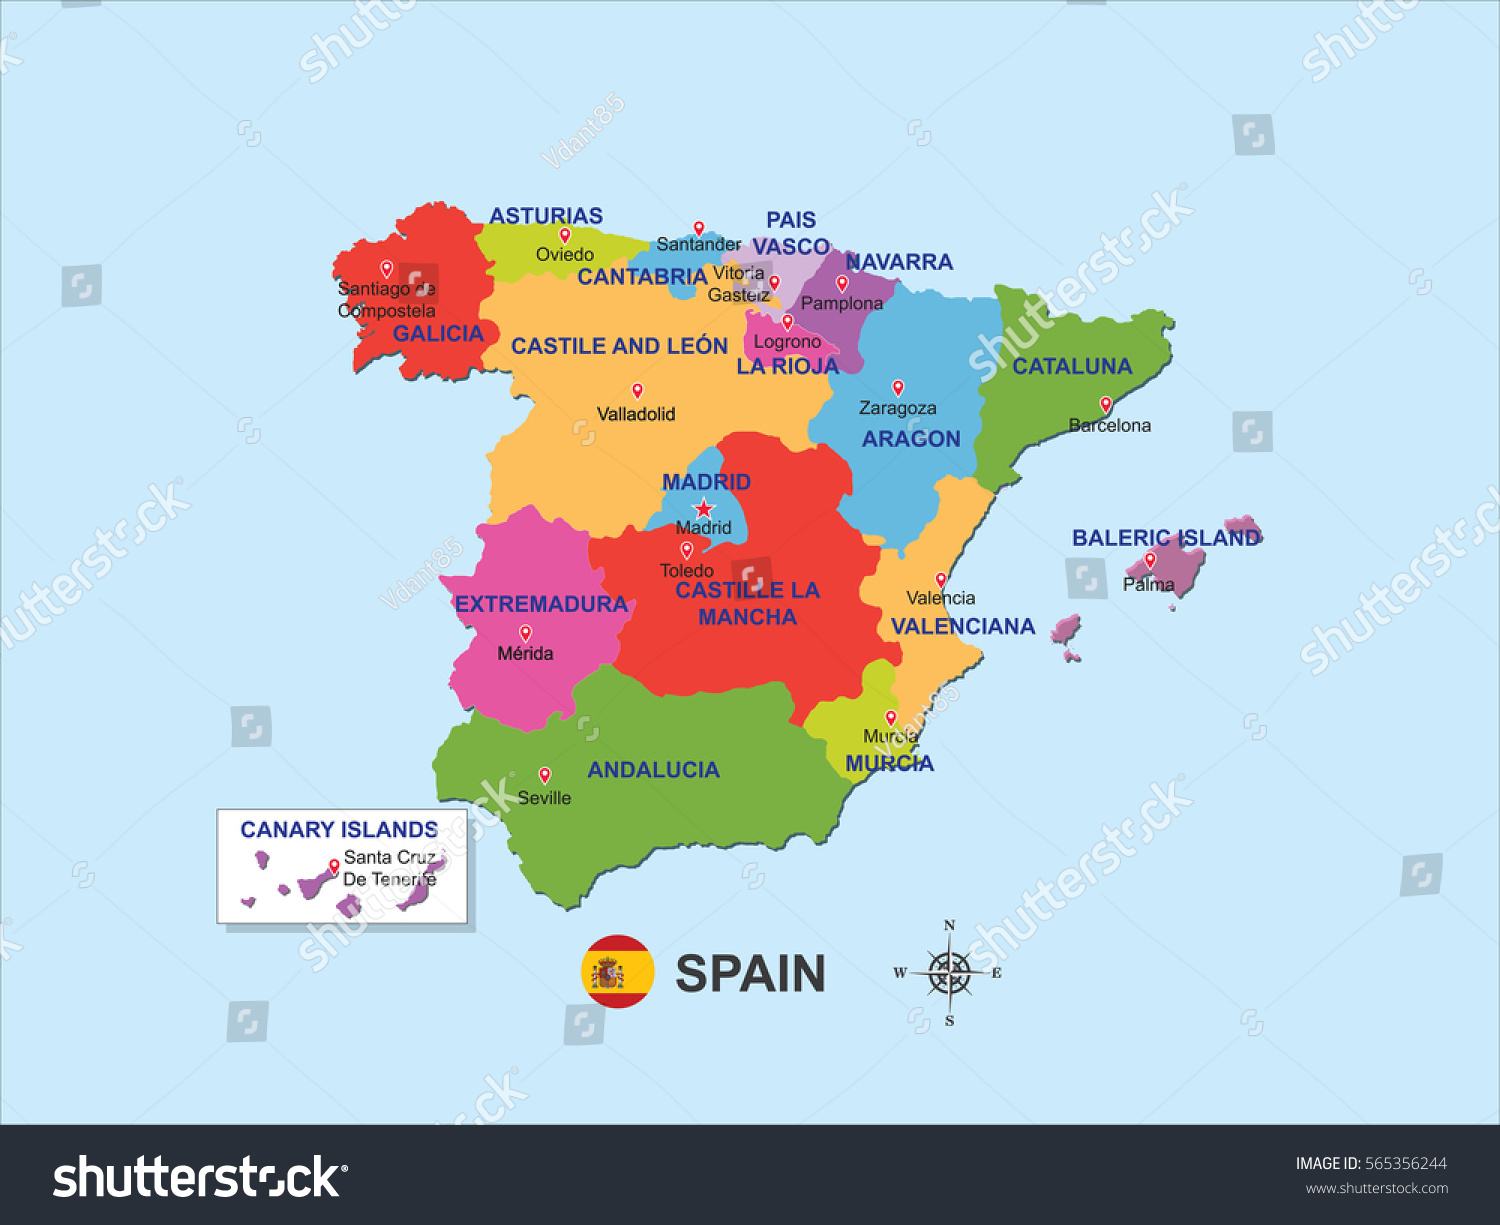 santander spain map santander maps spain maps of santander